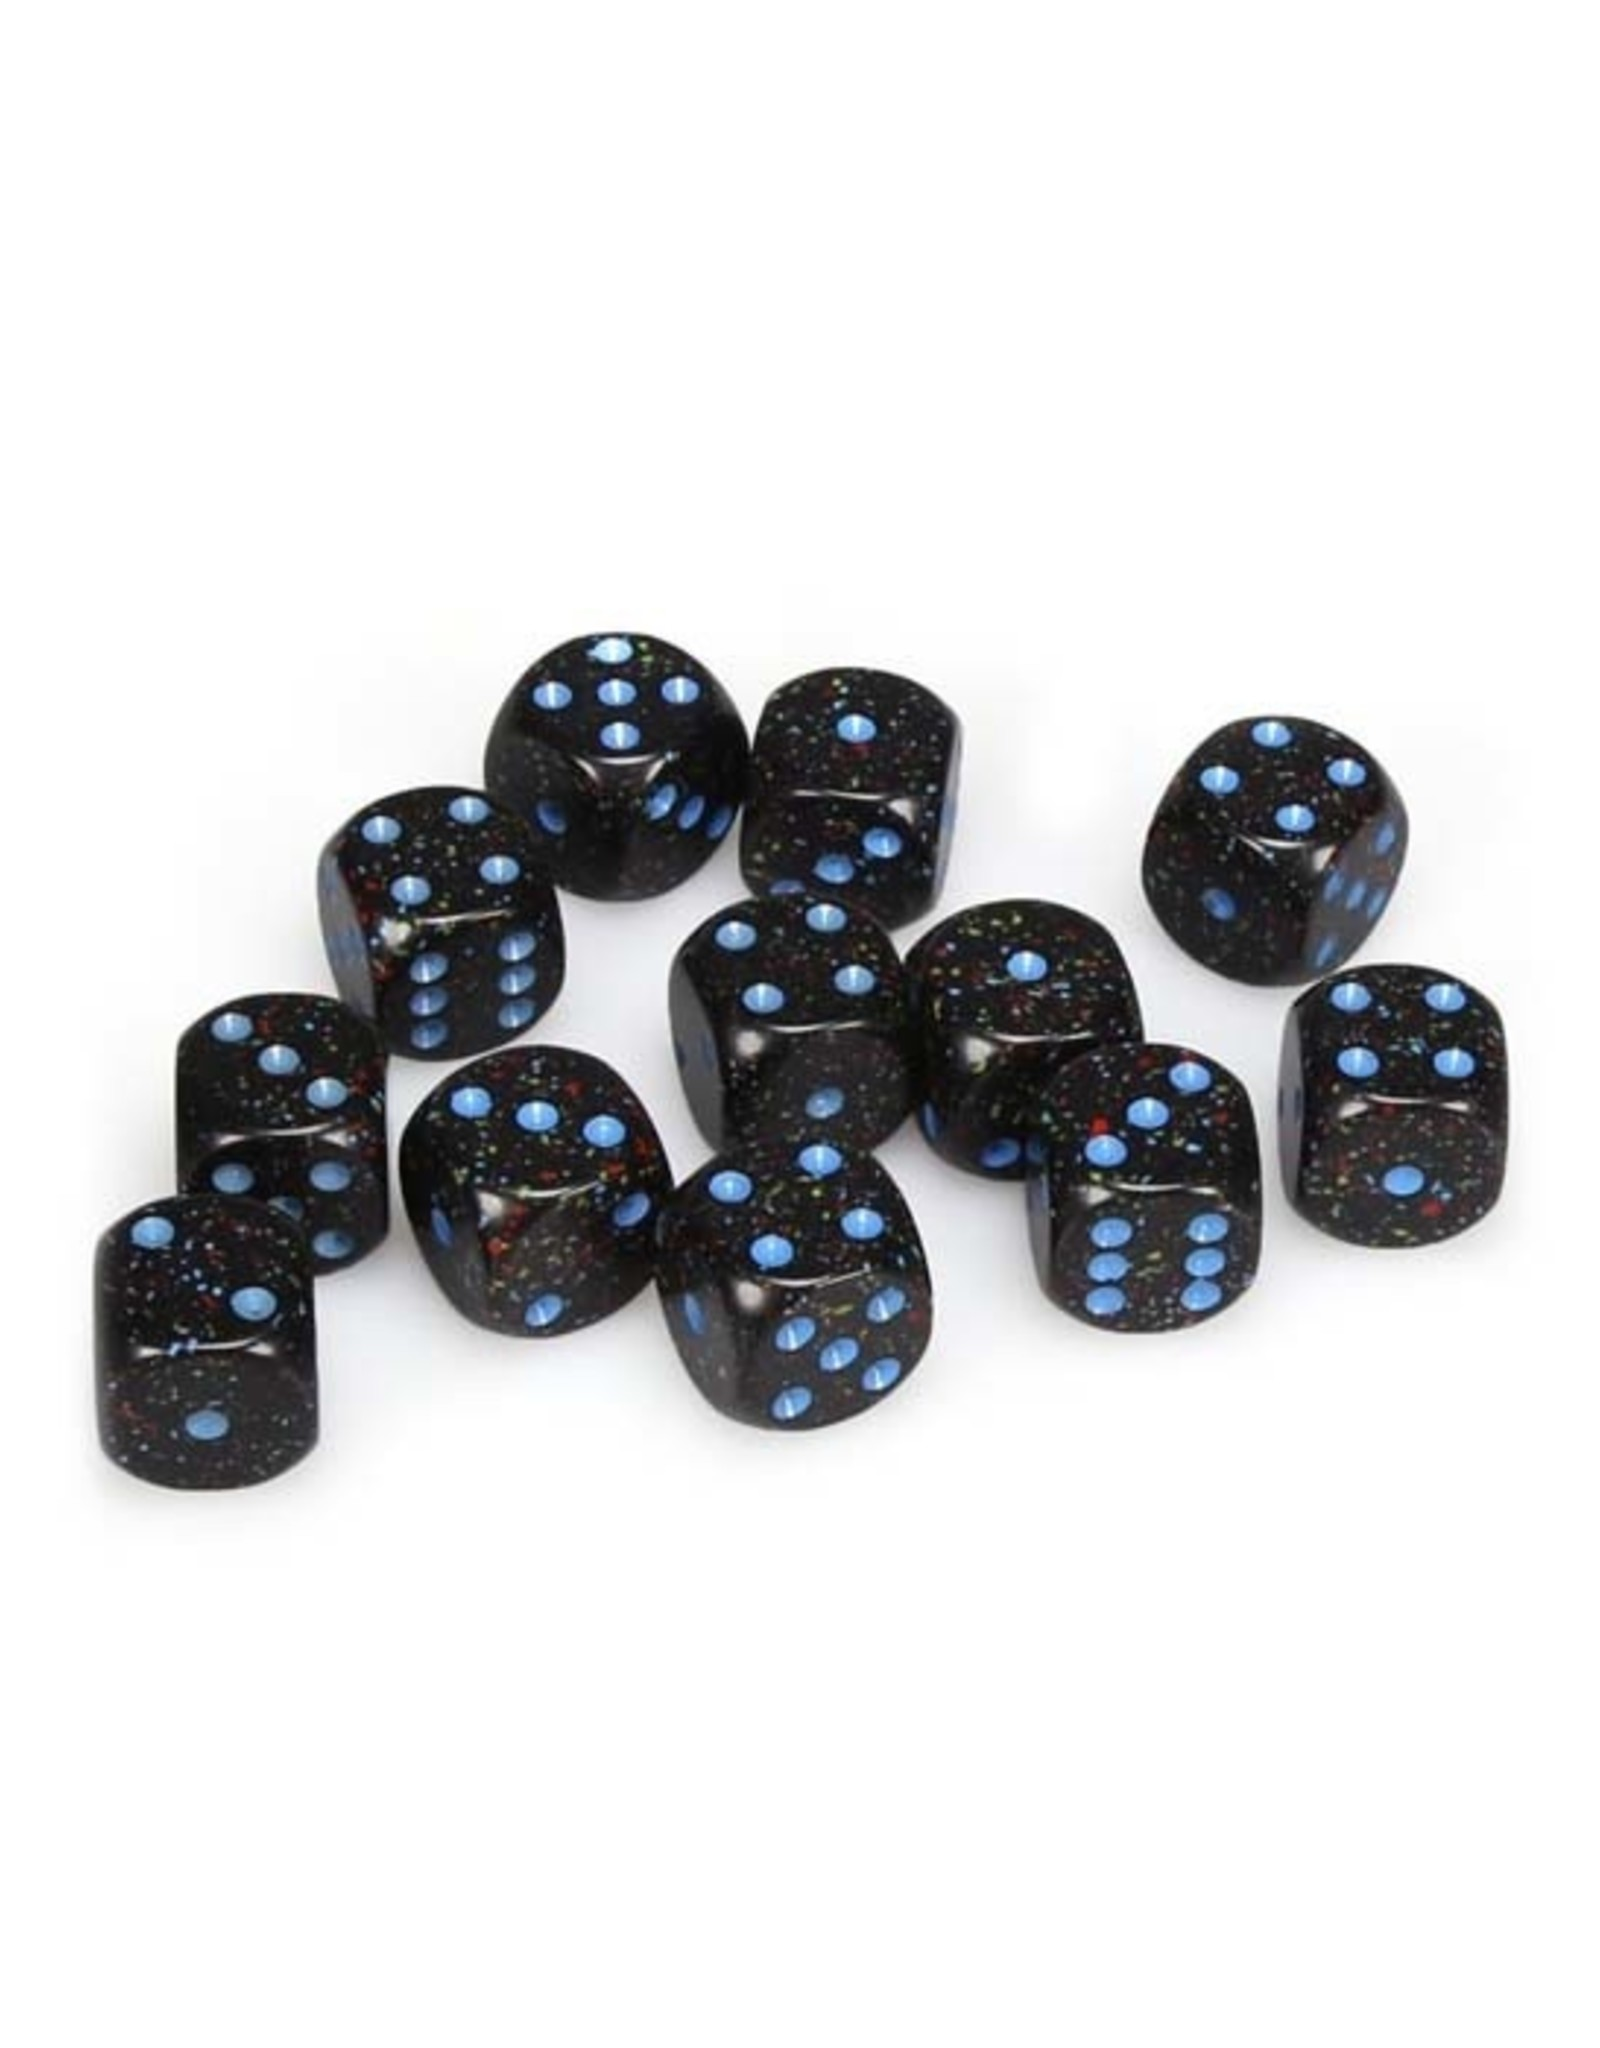 Chessex Chessex: 16mm D6 - Speckled - Blue Stars